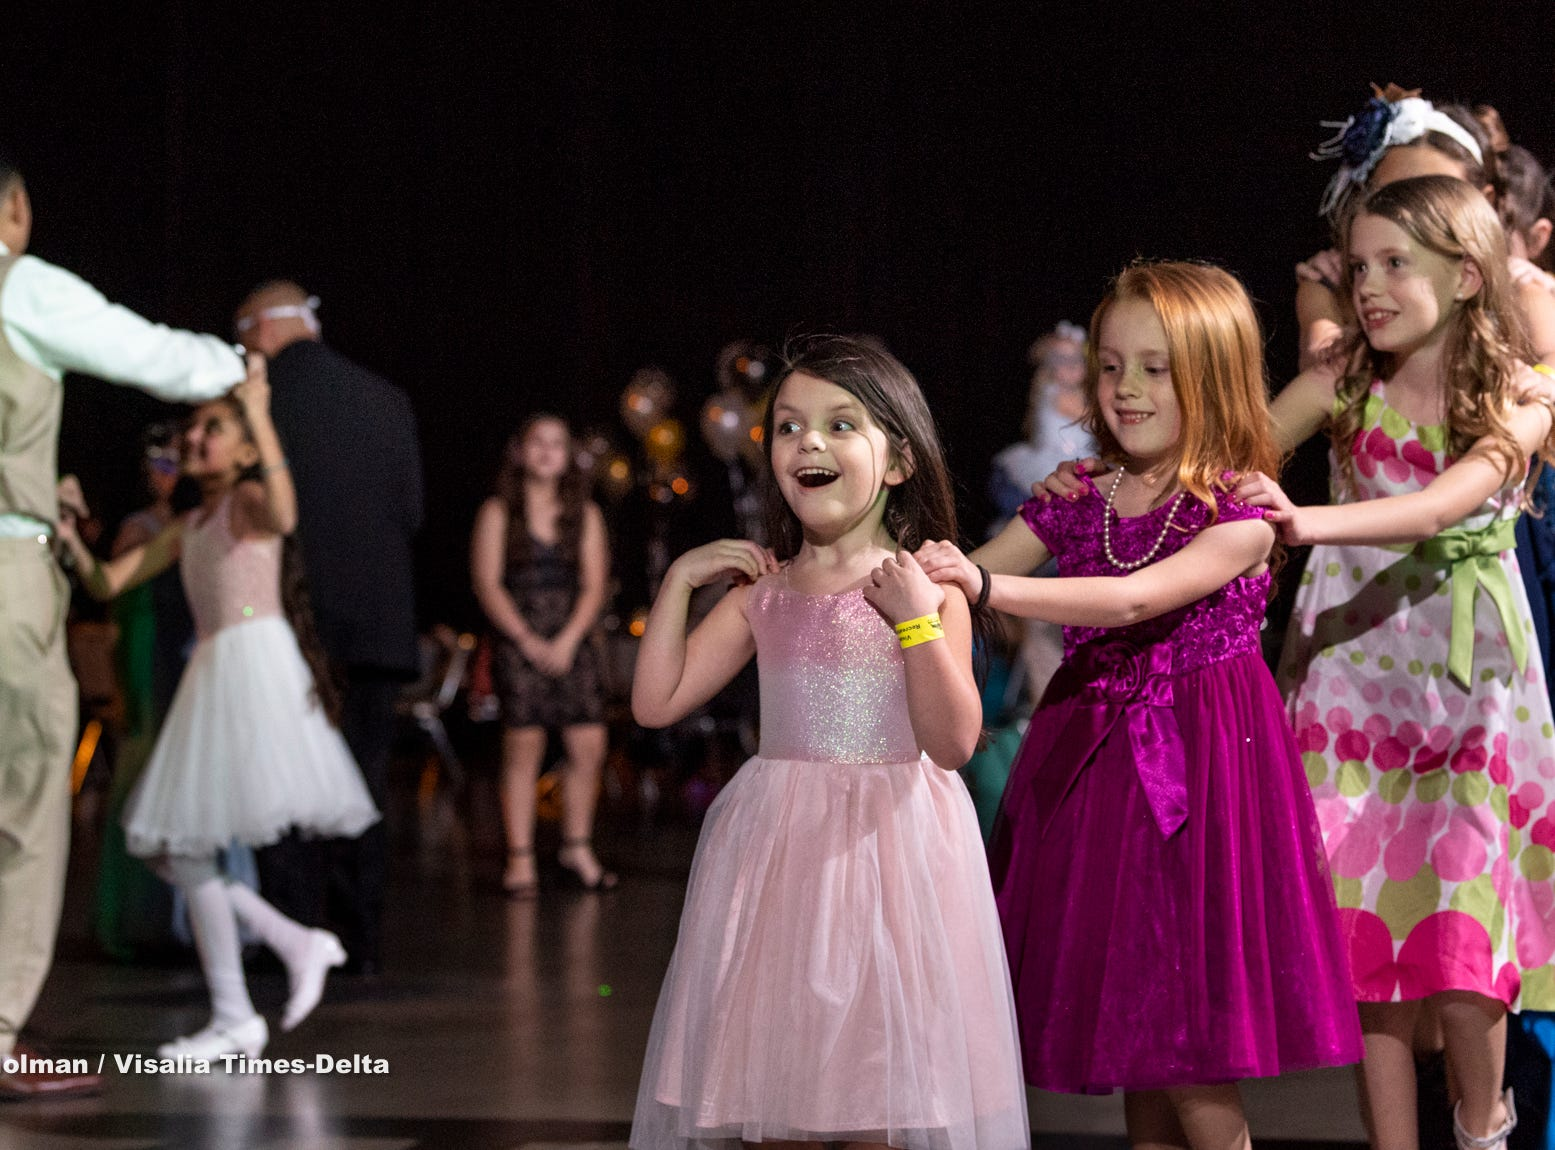 """Olivia Caudle, 4, leads others girls around the dance floor during the annual Father-Daughter Dance at the Visalia Convention Center on Saturday, February 16, 2019. This year's theme was """"Masquerade Ball,"""" and included music, dancing and refreshments."""